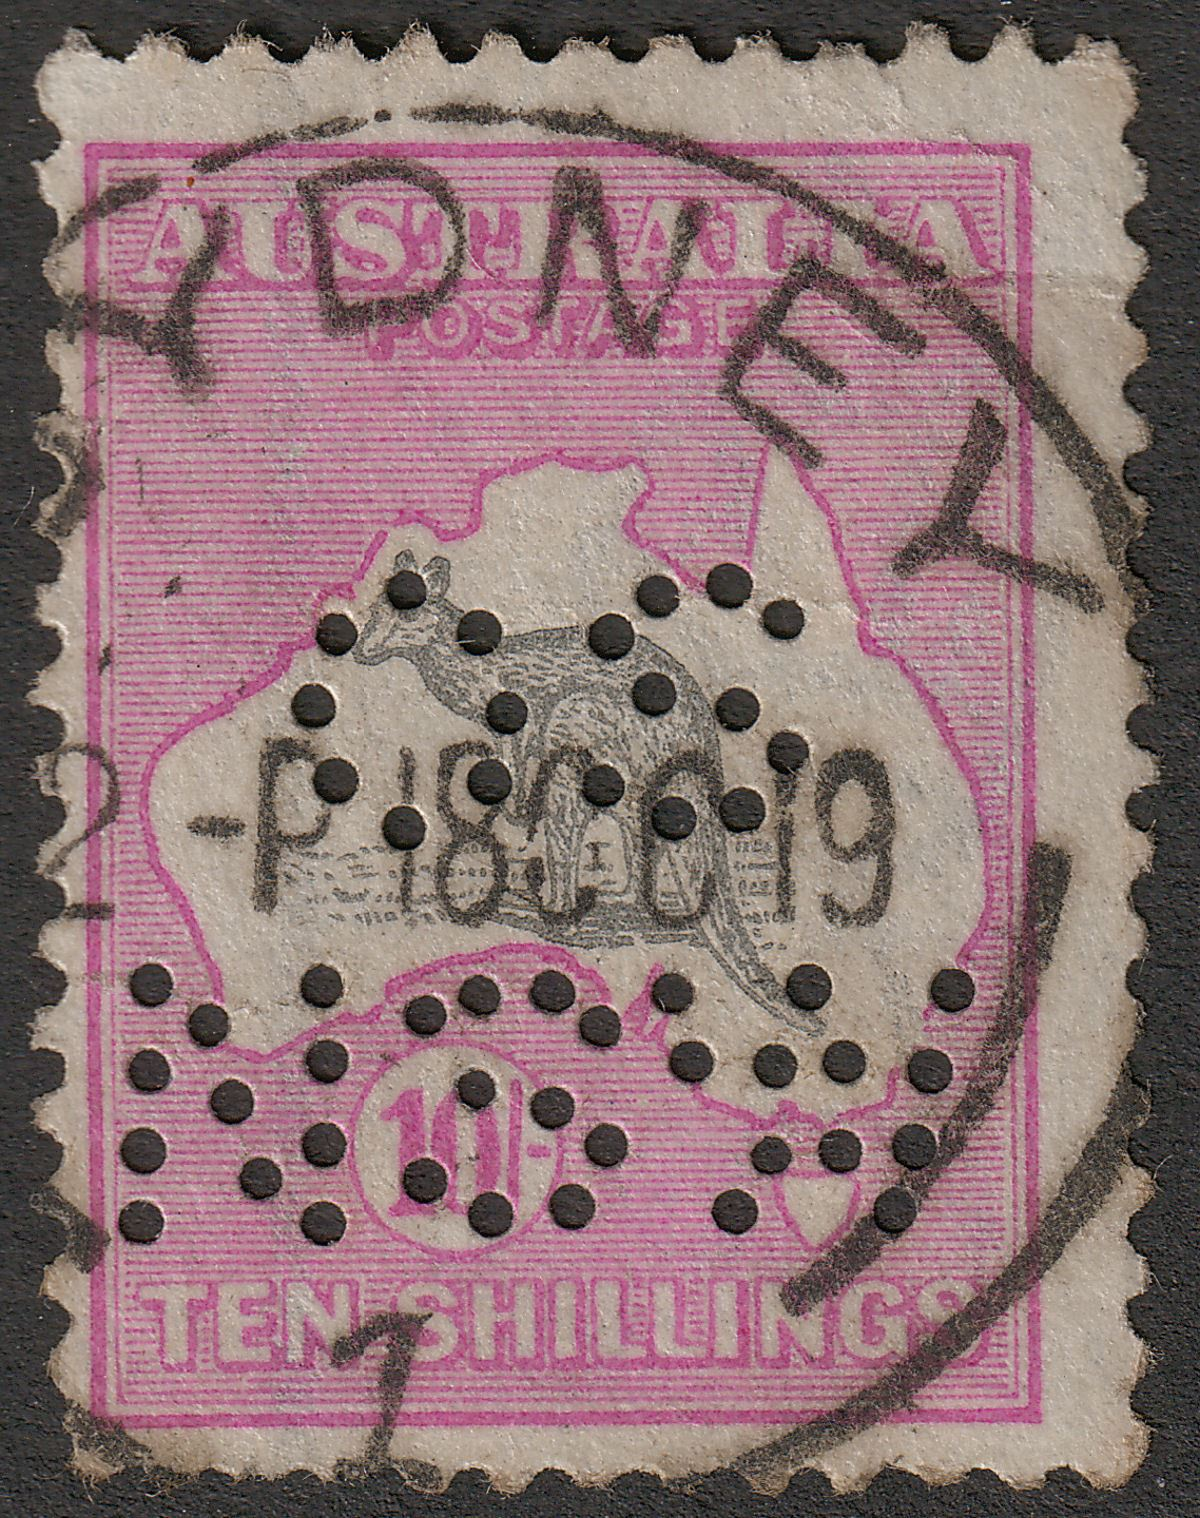 Australia 1919 KGV Roo 10sh Grey and Bright Pink perf OS NSW Used SG43a cat £325